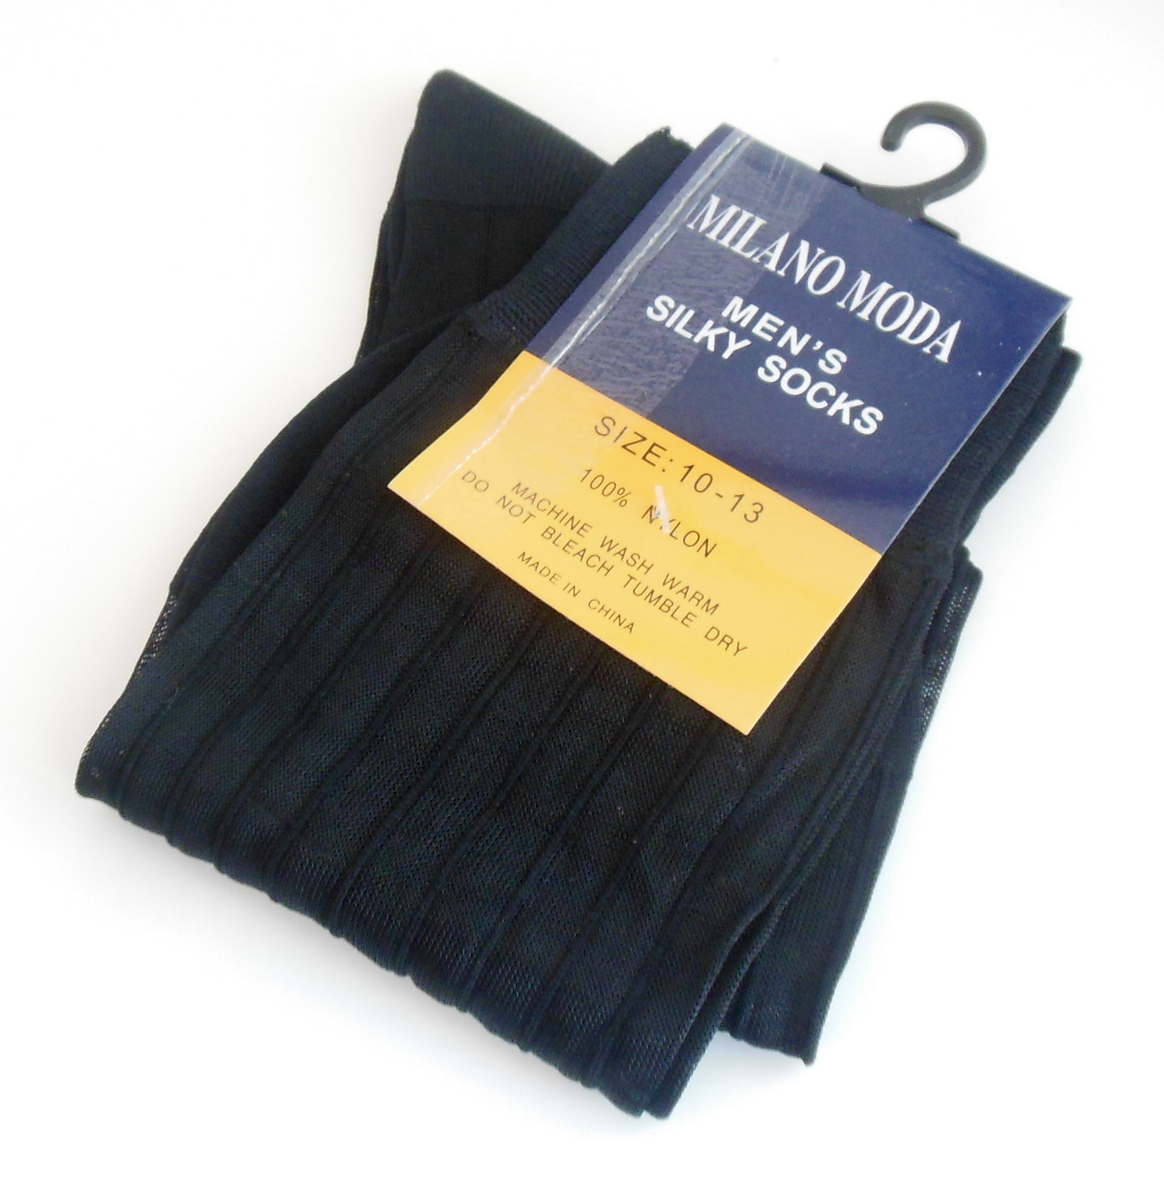 Milano Moda Mens Ribbed Socks Silky Nylon In Black Sz 10 to 13 Semi Sheer